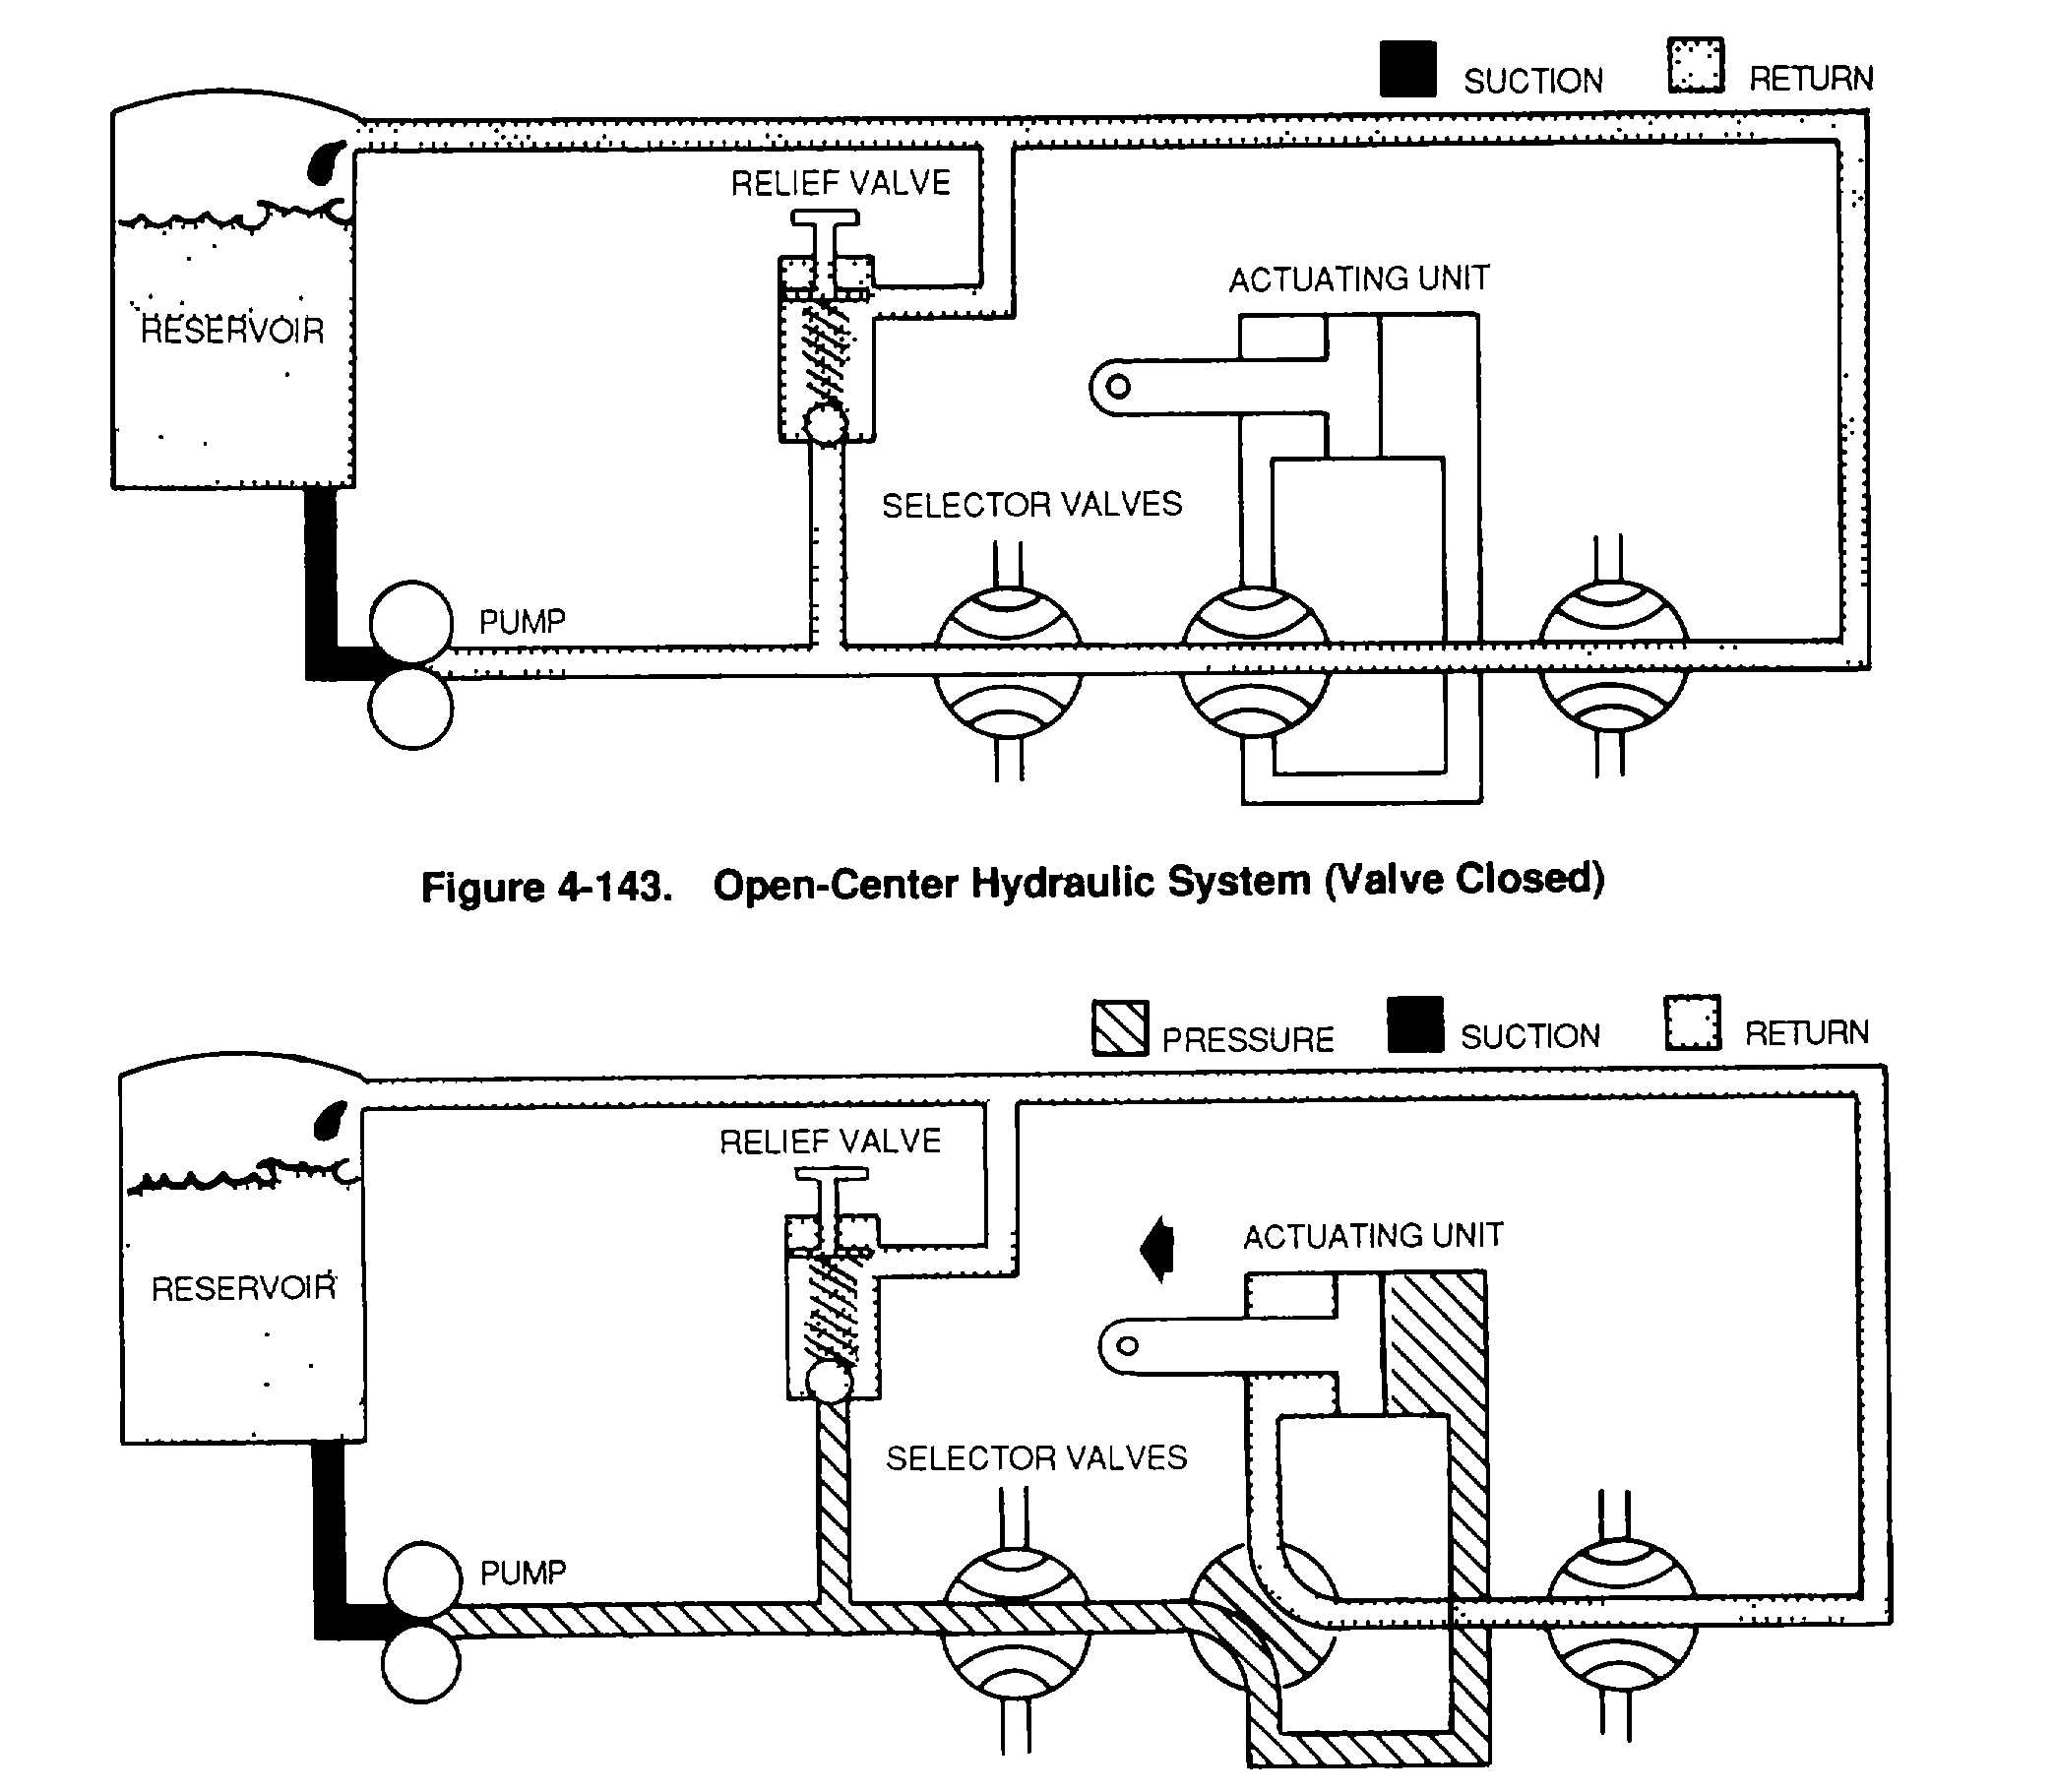 spooling in operating system with diagram of adaptive immune response flow figure 4 143 open center hydraulic valve closed